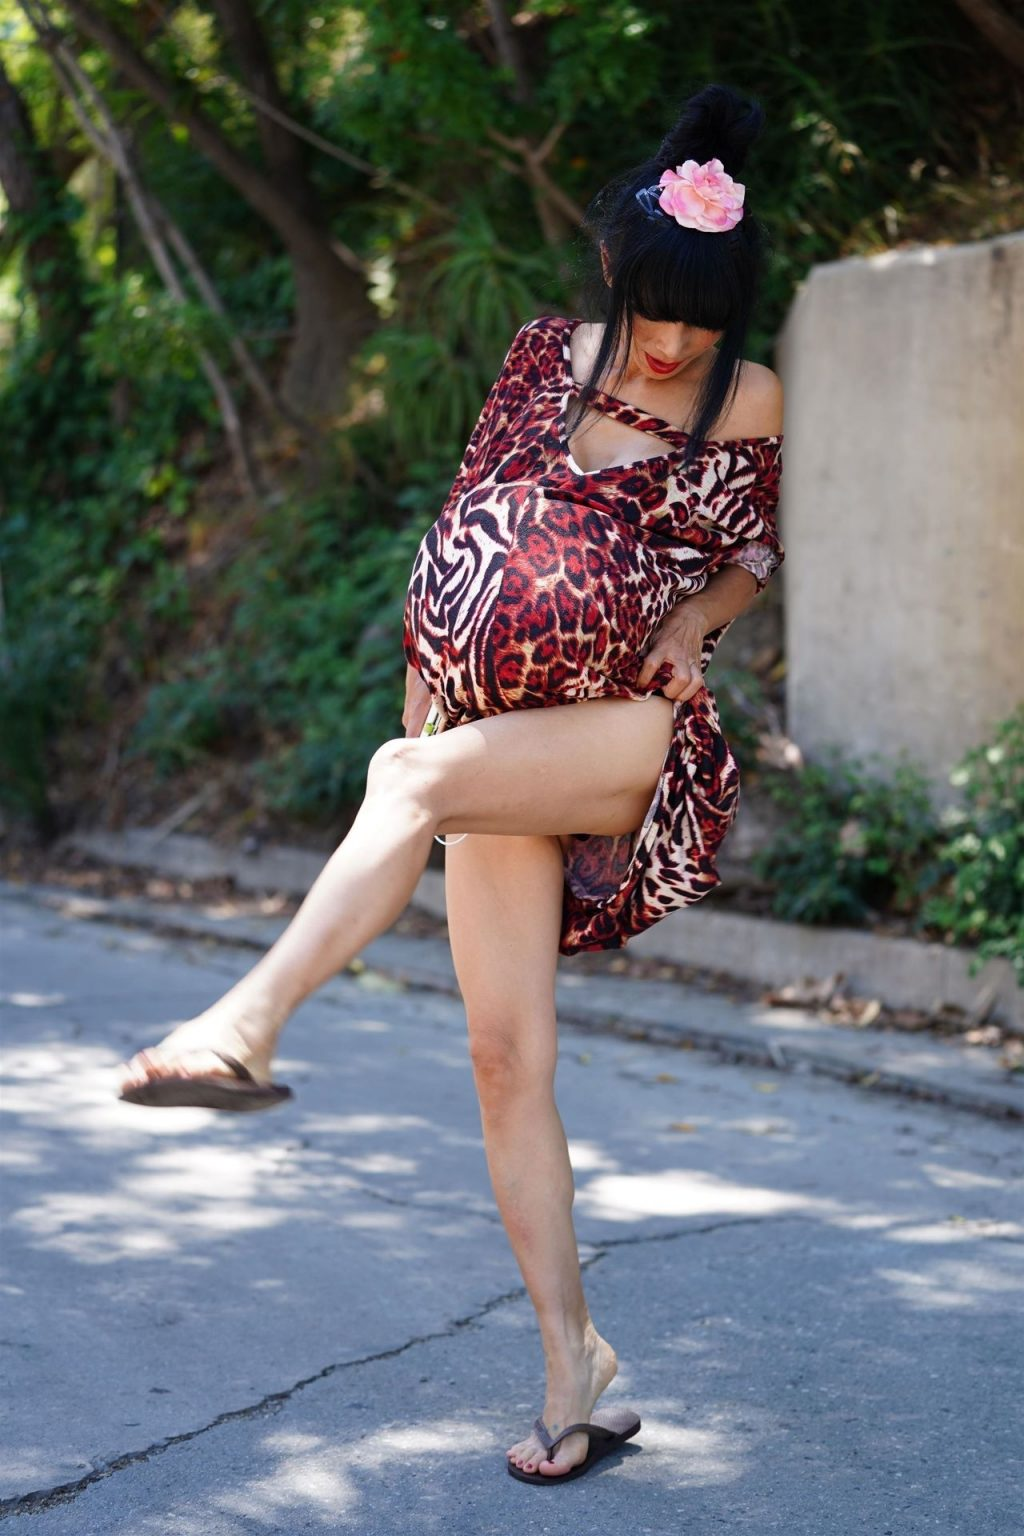 Bai Ling Wears a Pregnant Belly in Beverly Hills (78 Photos)